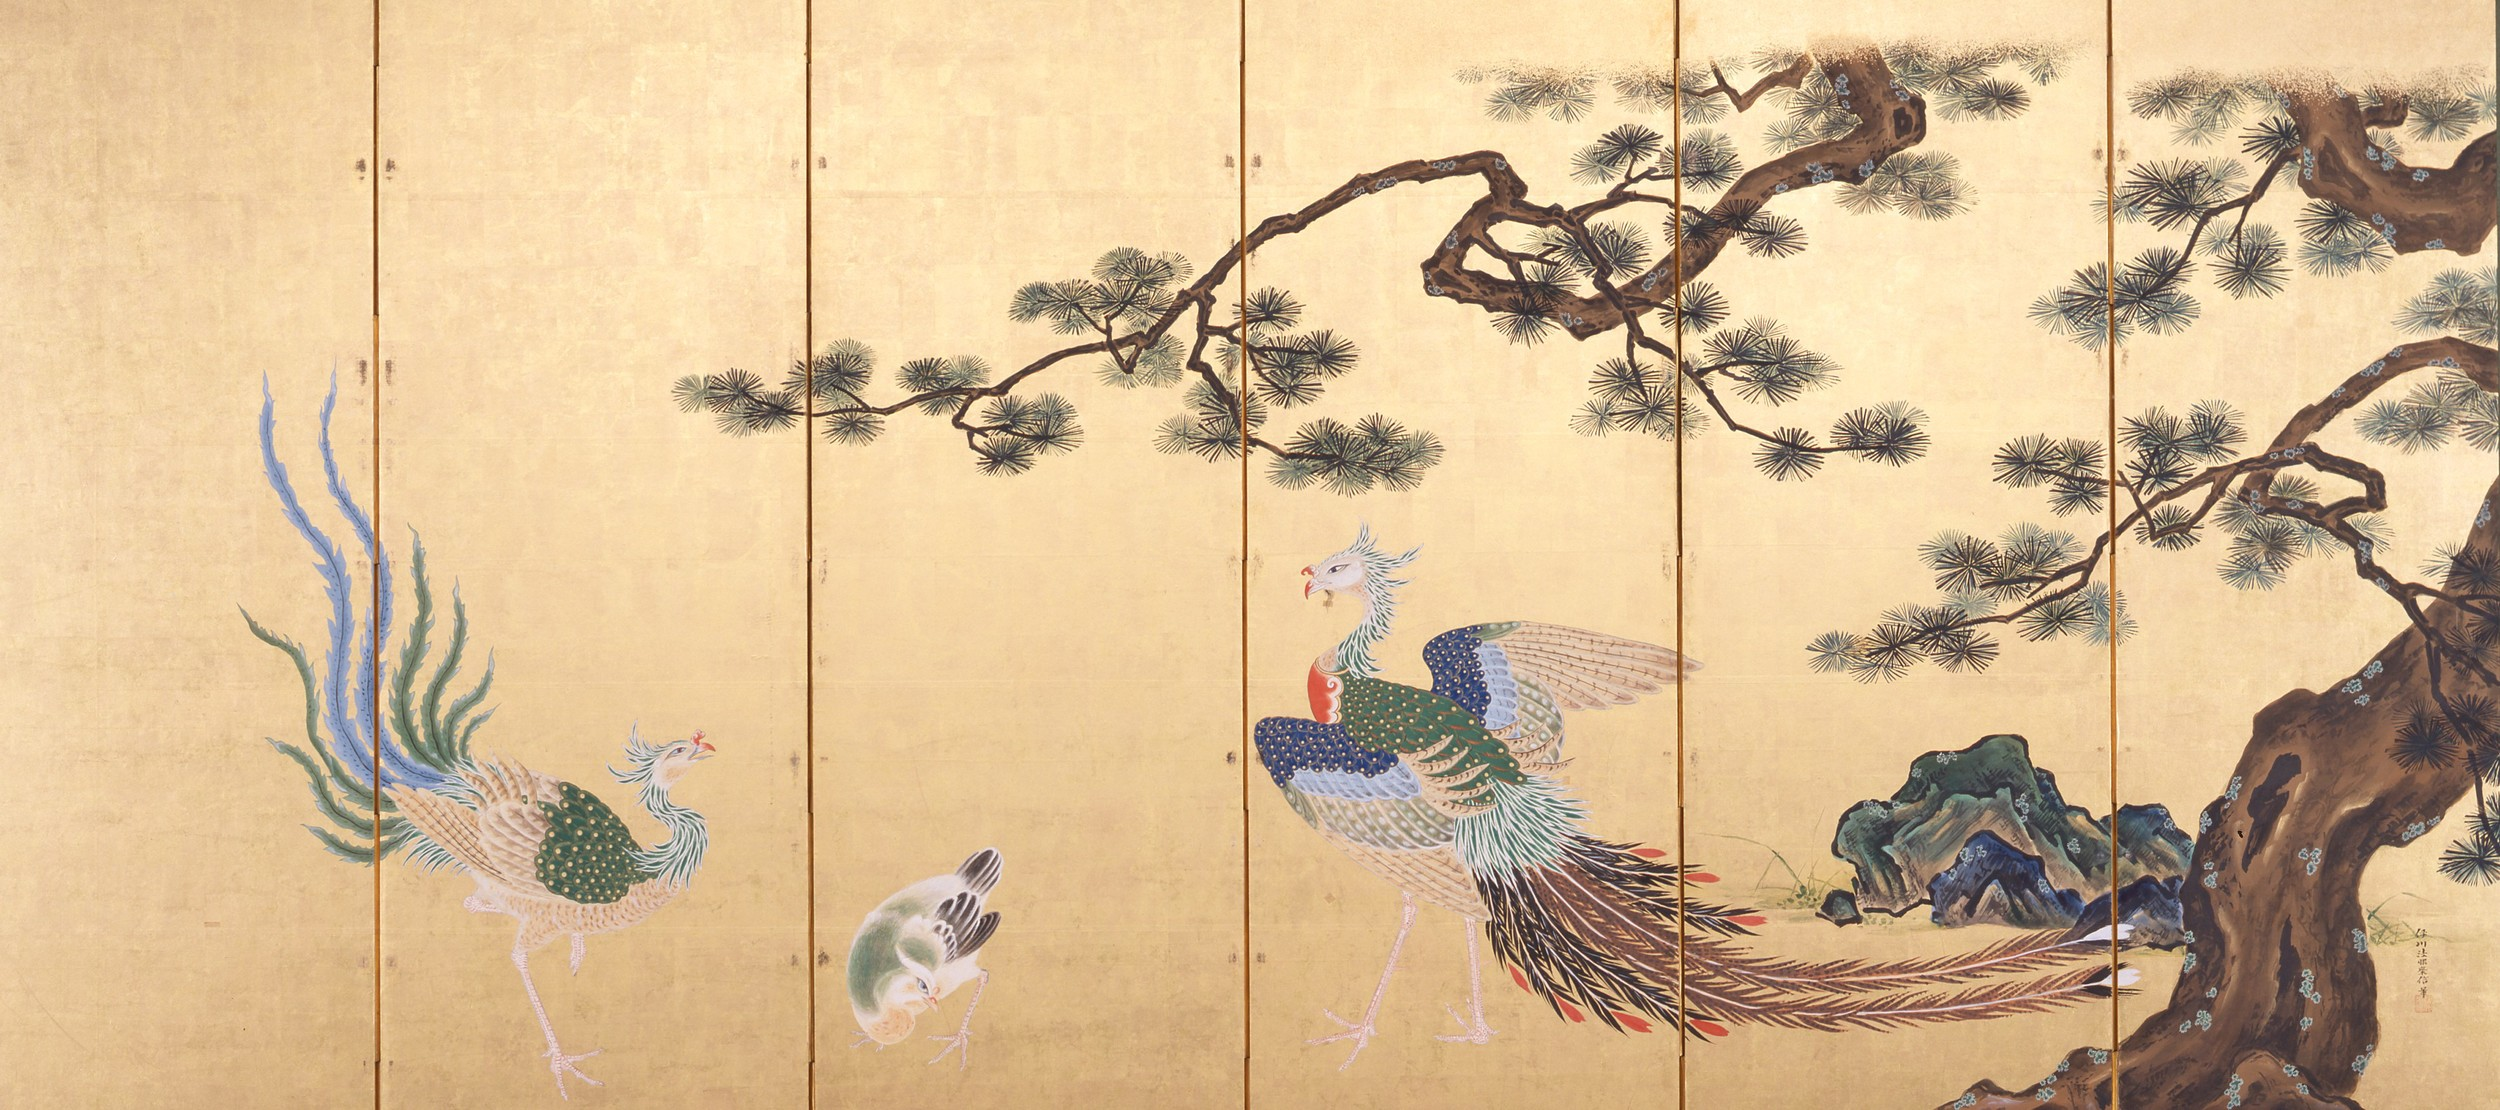 Pawlonia and Pines with Phoenix, circa 1802-1816. Kano Isen'in Naganobu, Japanese, 1775-1828. Photo courtesy of the Philadelphia Museum of Art.